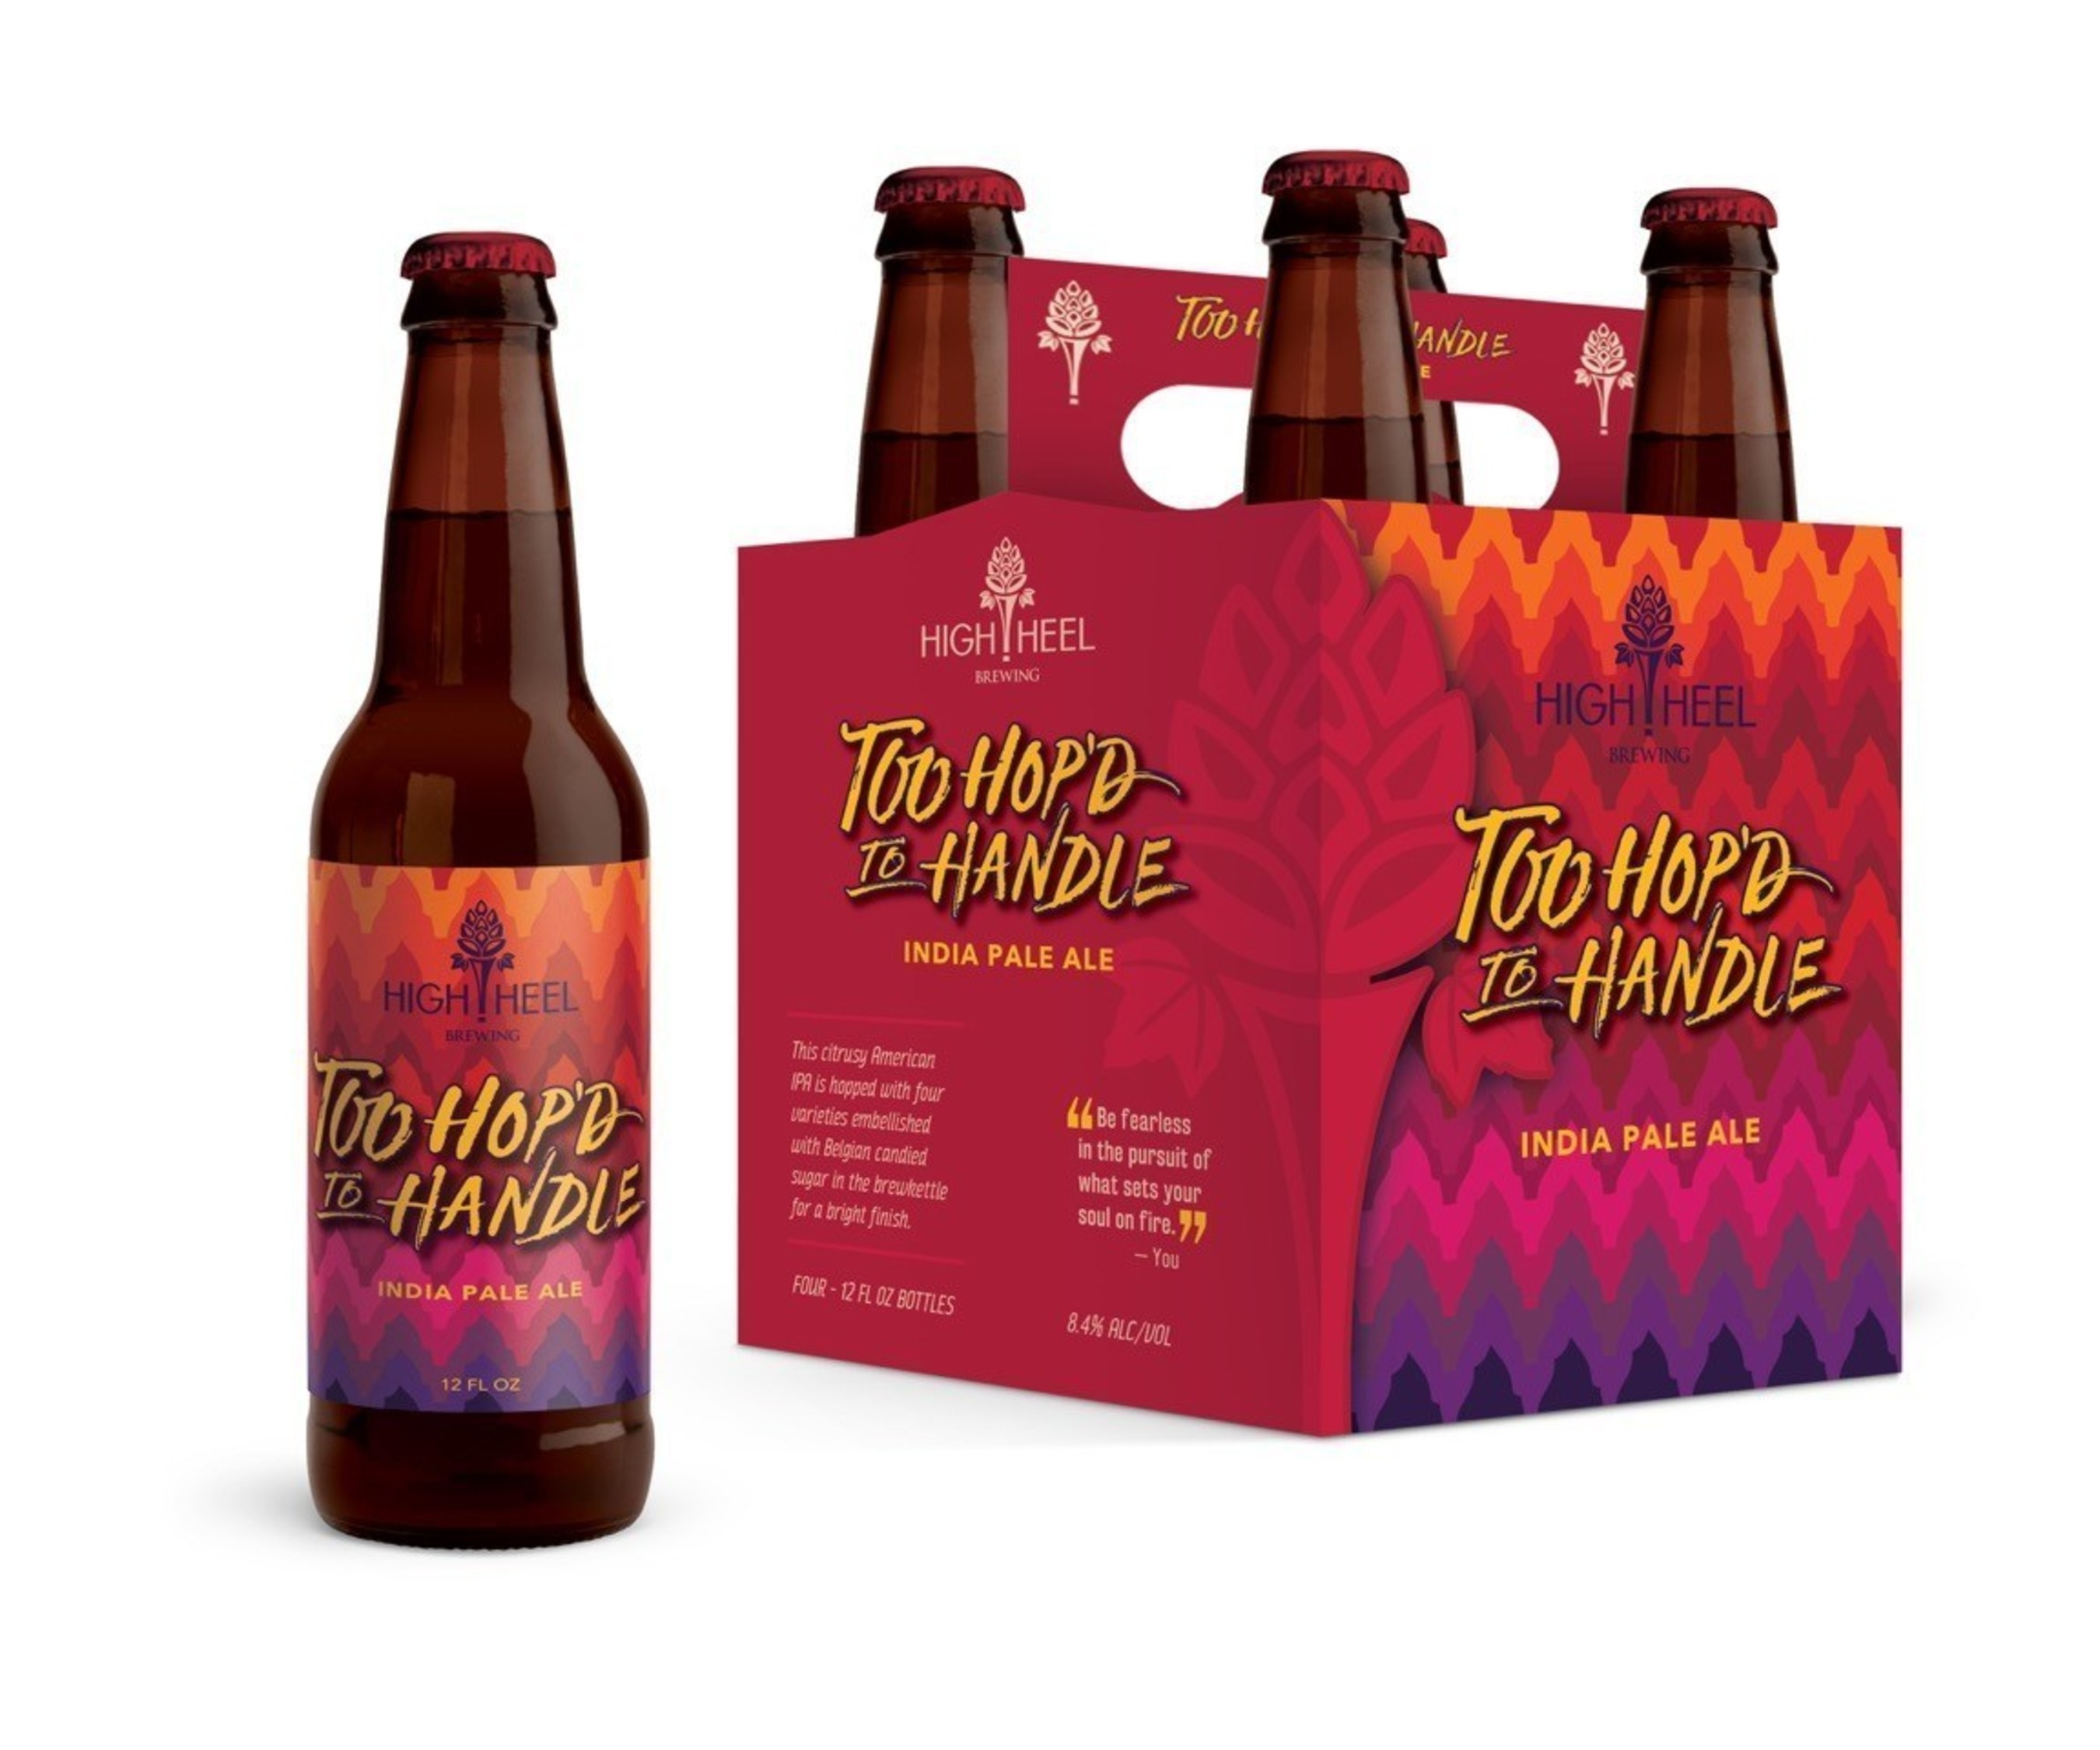 Too Hop'd To Handle India Pale Ale by High Heel Brewing. Photo Credit: High Heel Brewing.